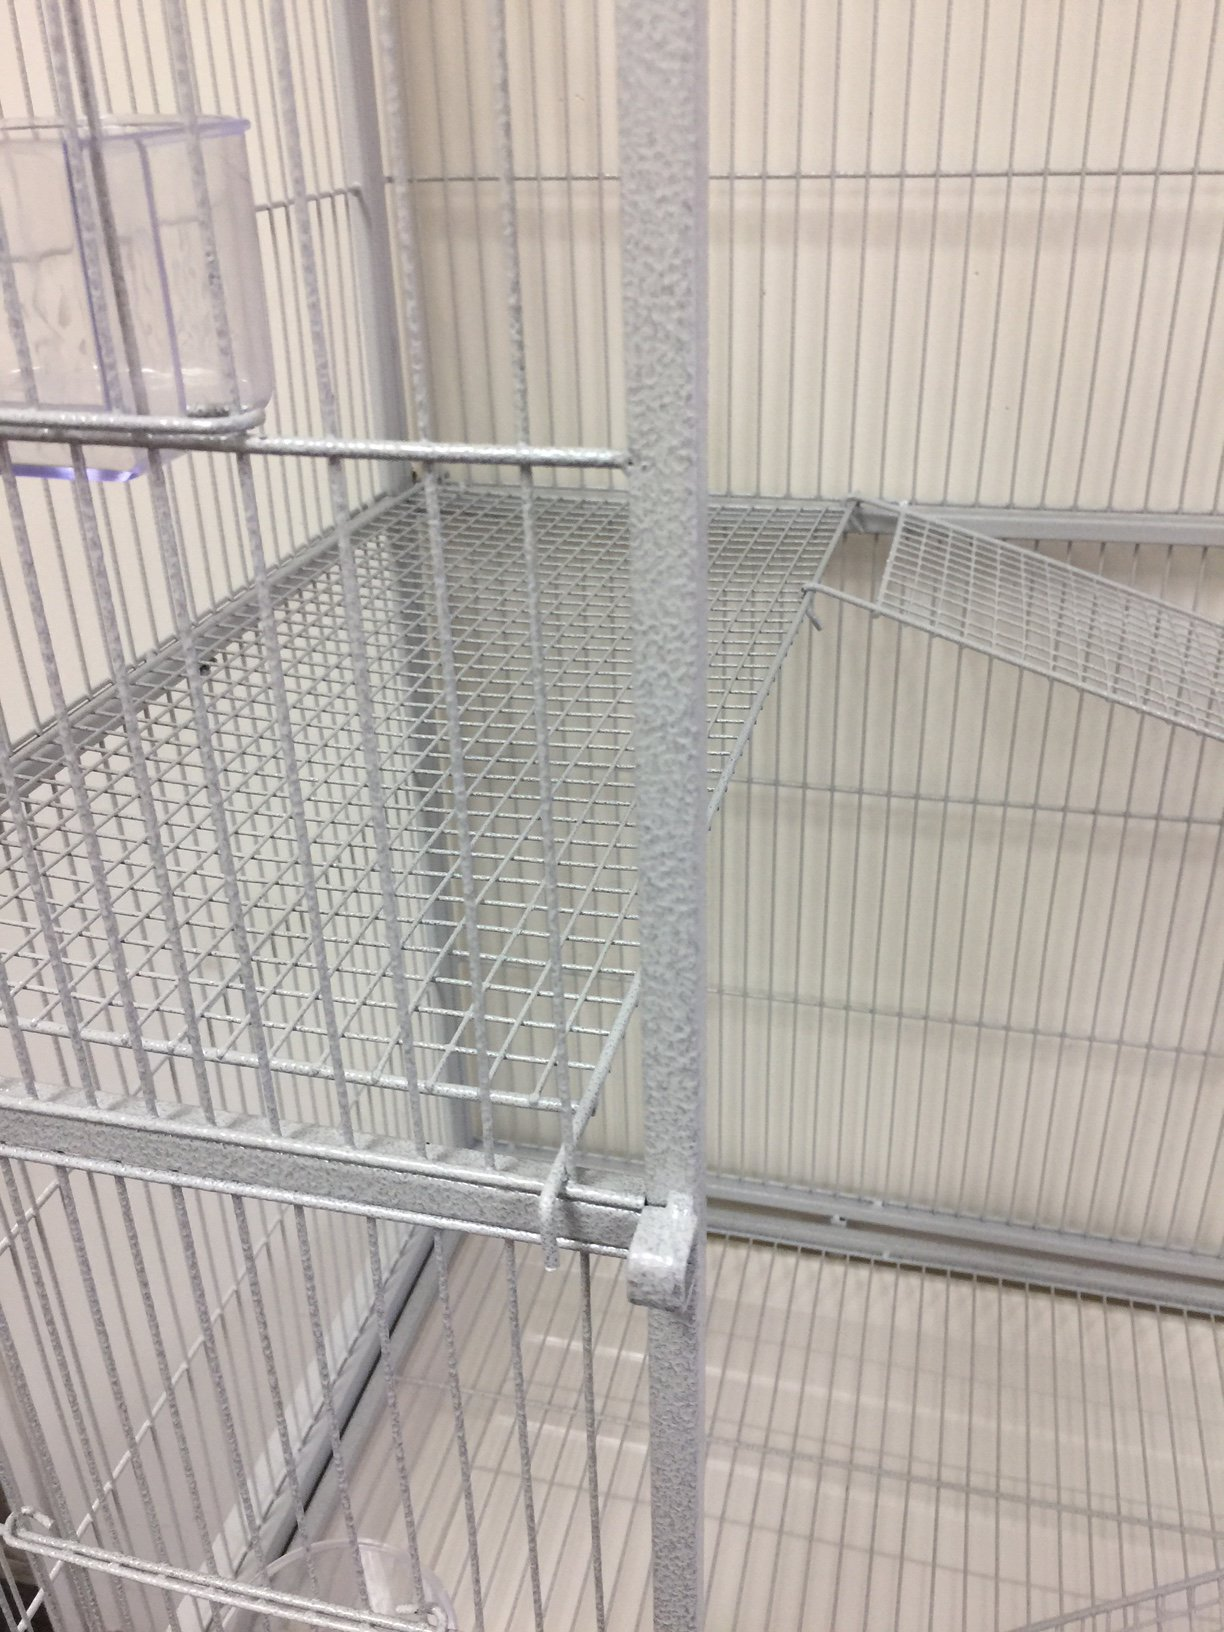 Mcage Large Double Wrought Iron Flight Canary Parakeet Cockatiel Lovebird Finch Sugar Glider Cage With Removable Rolling Stand on Wheels 63'' Length x 19'' Depth x 64'' Height by Mcage